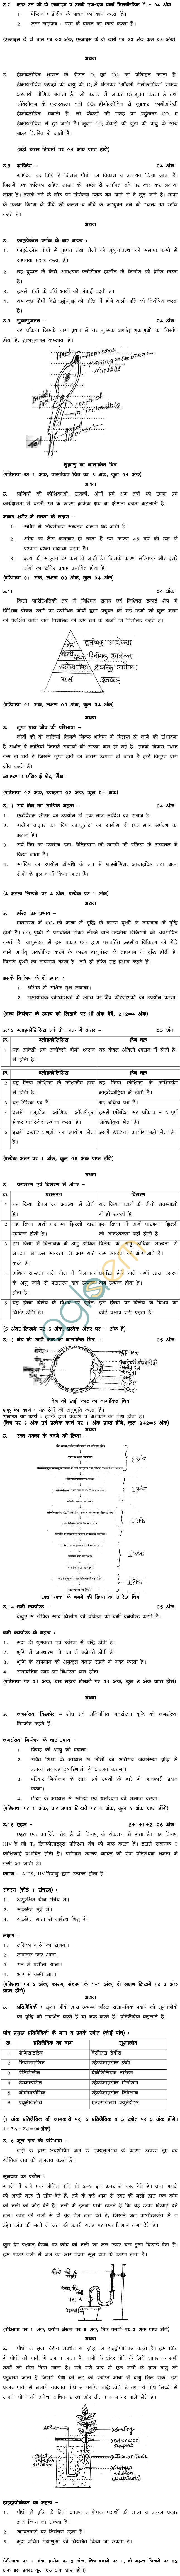 MP Board Class XII Biology Model Questions & Answers - Set 3